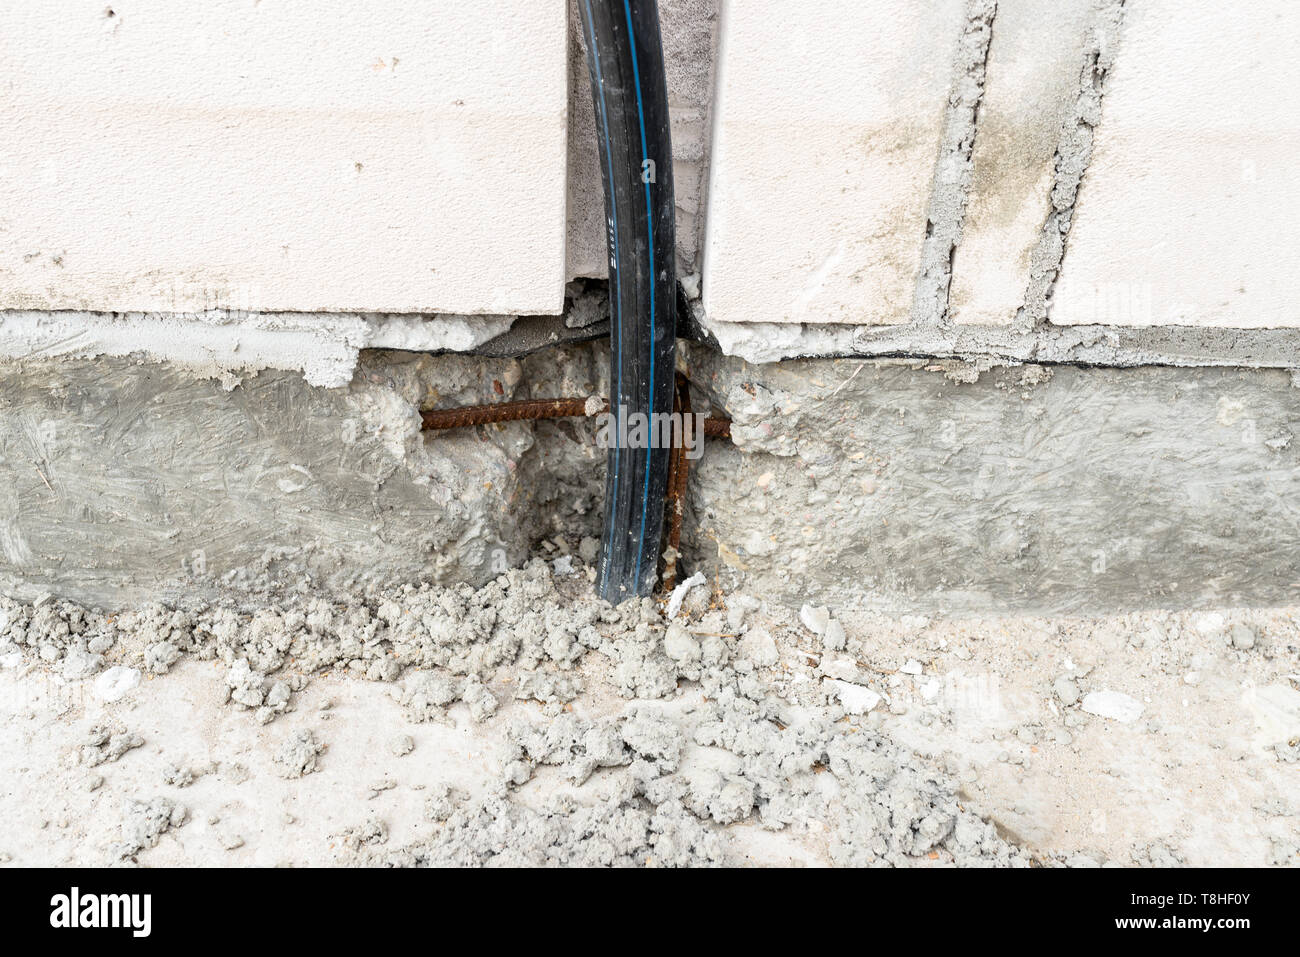 An electric high voltage cable protruding from the foundation of the house being built. - Stock Image